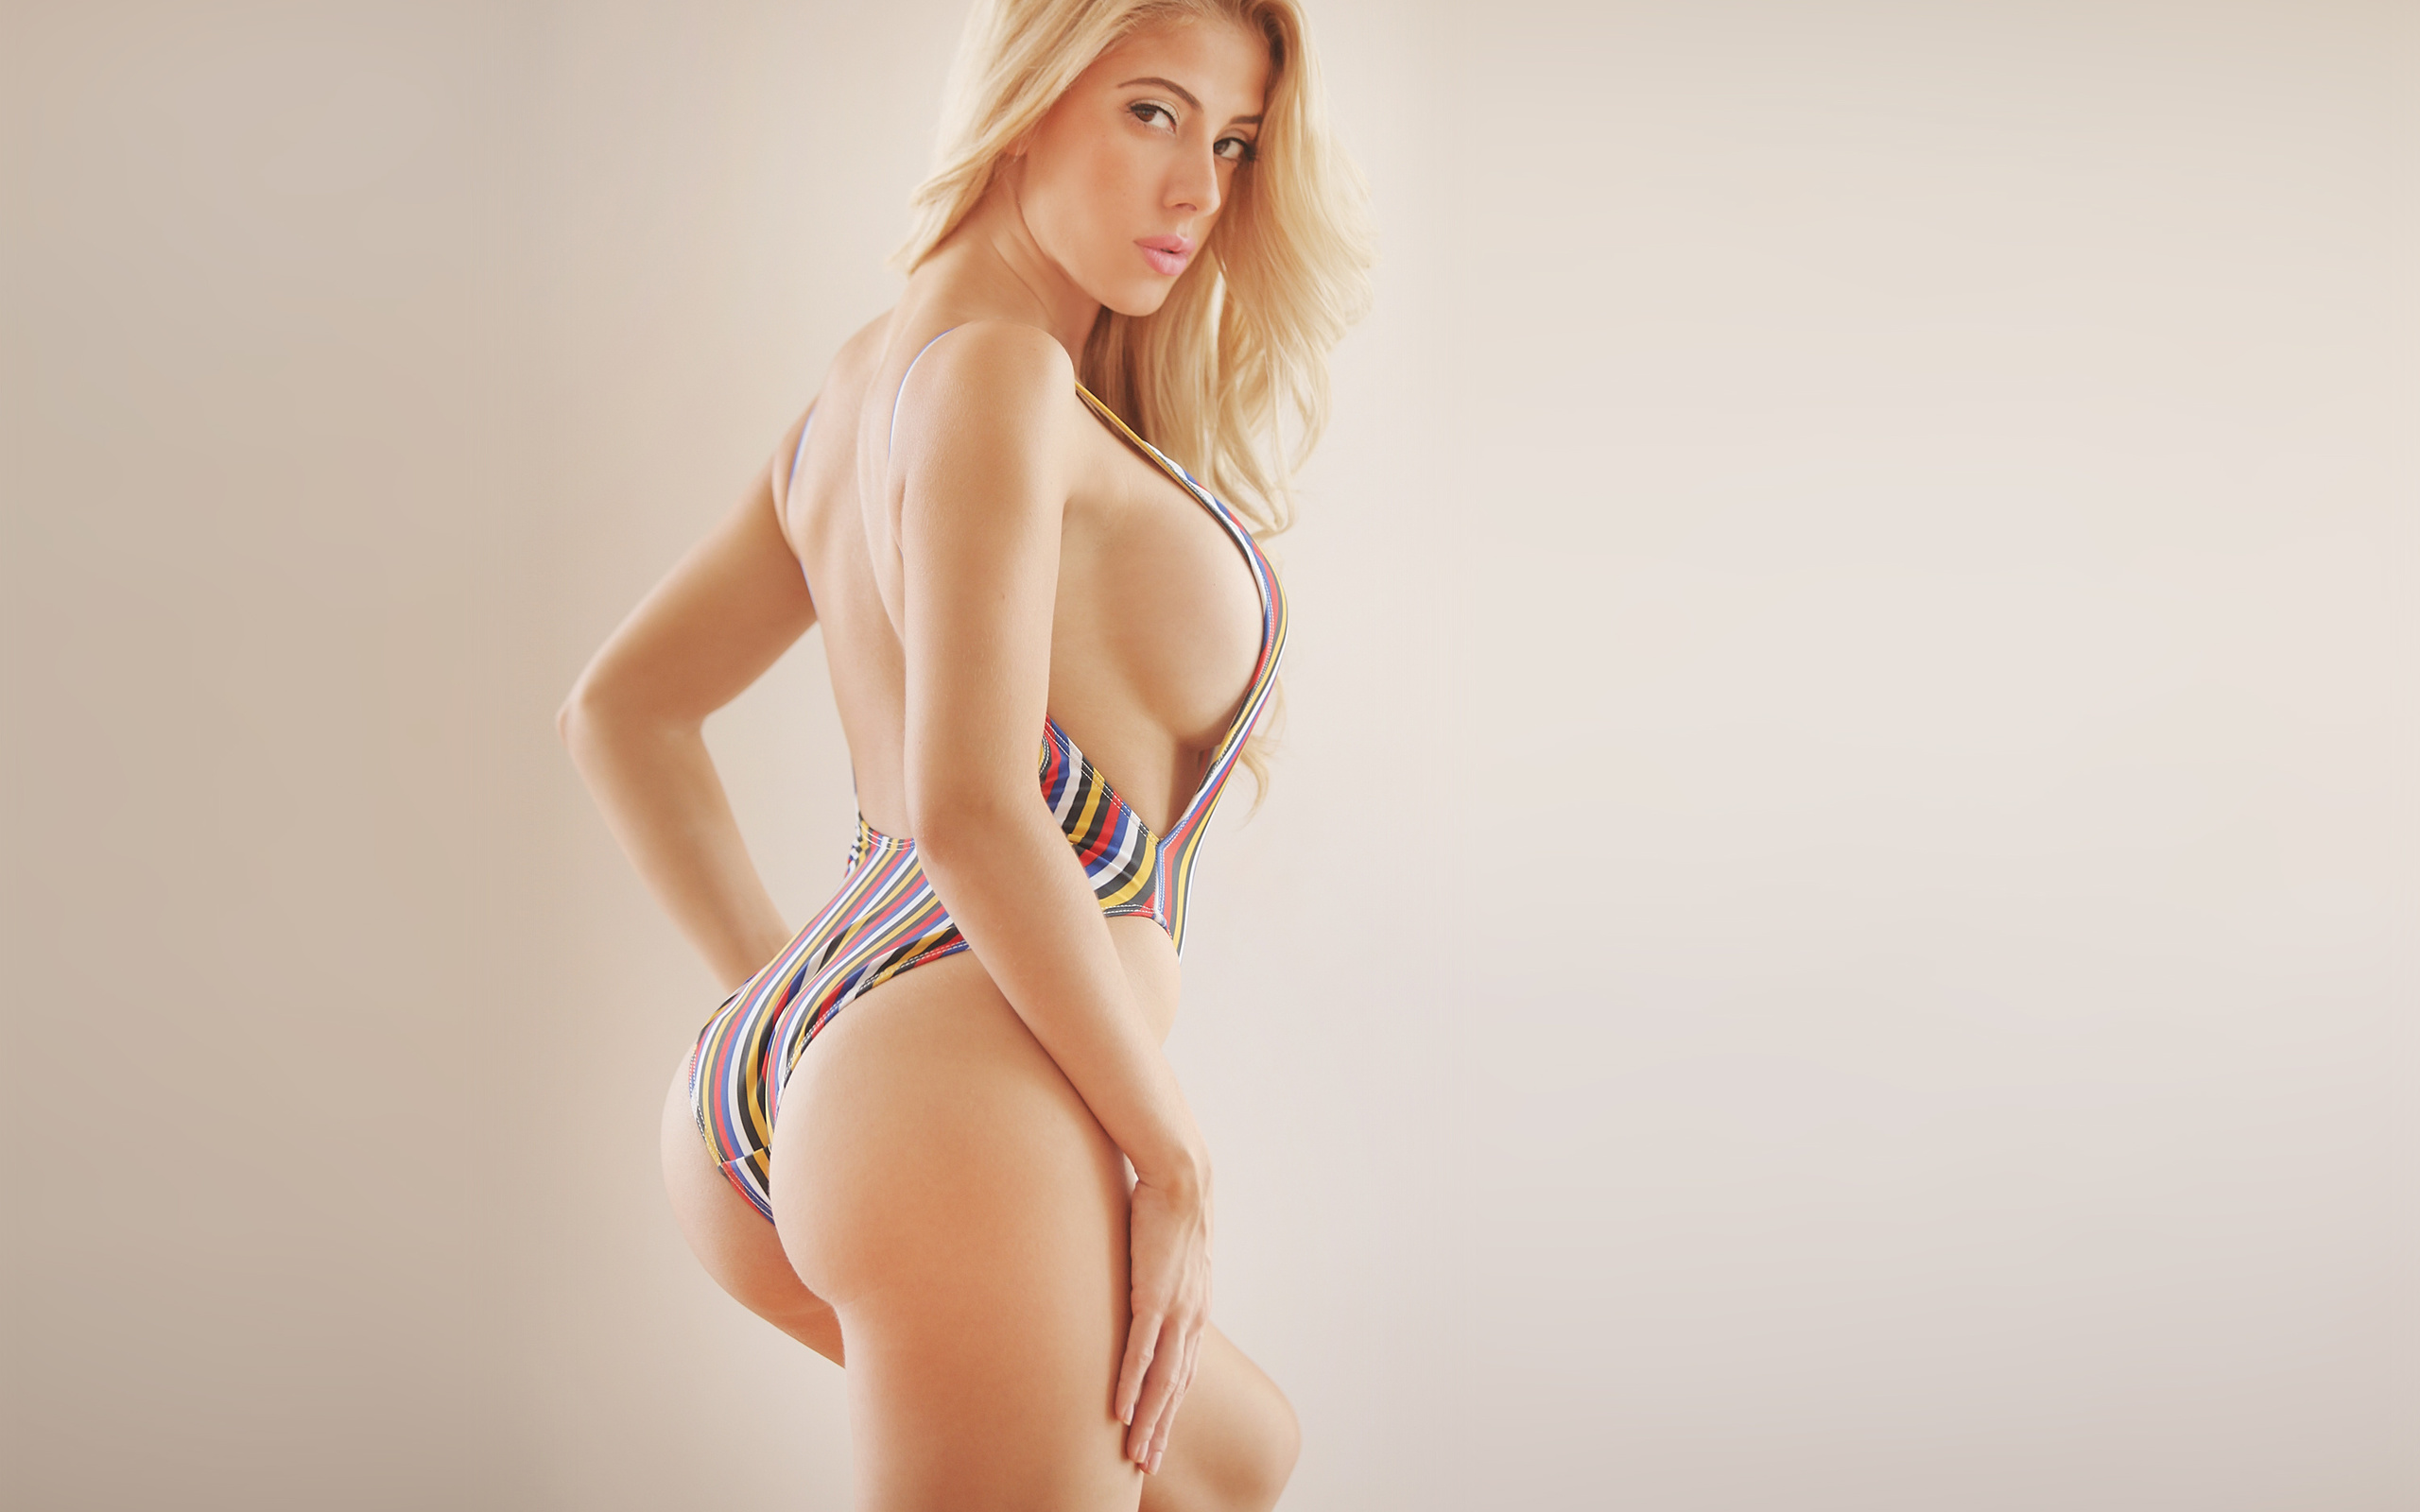 new-only-picture-of-sexiest-girl-with-figure